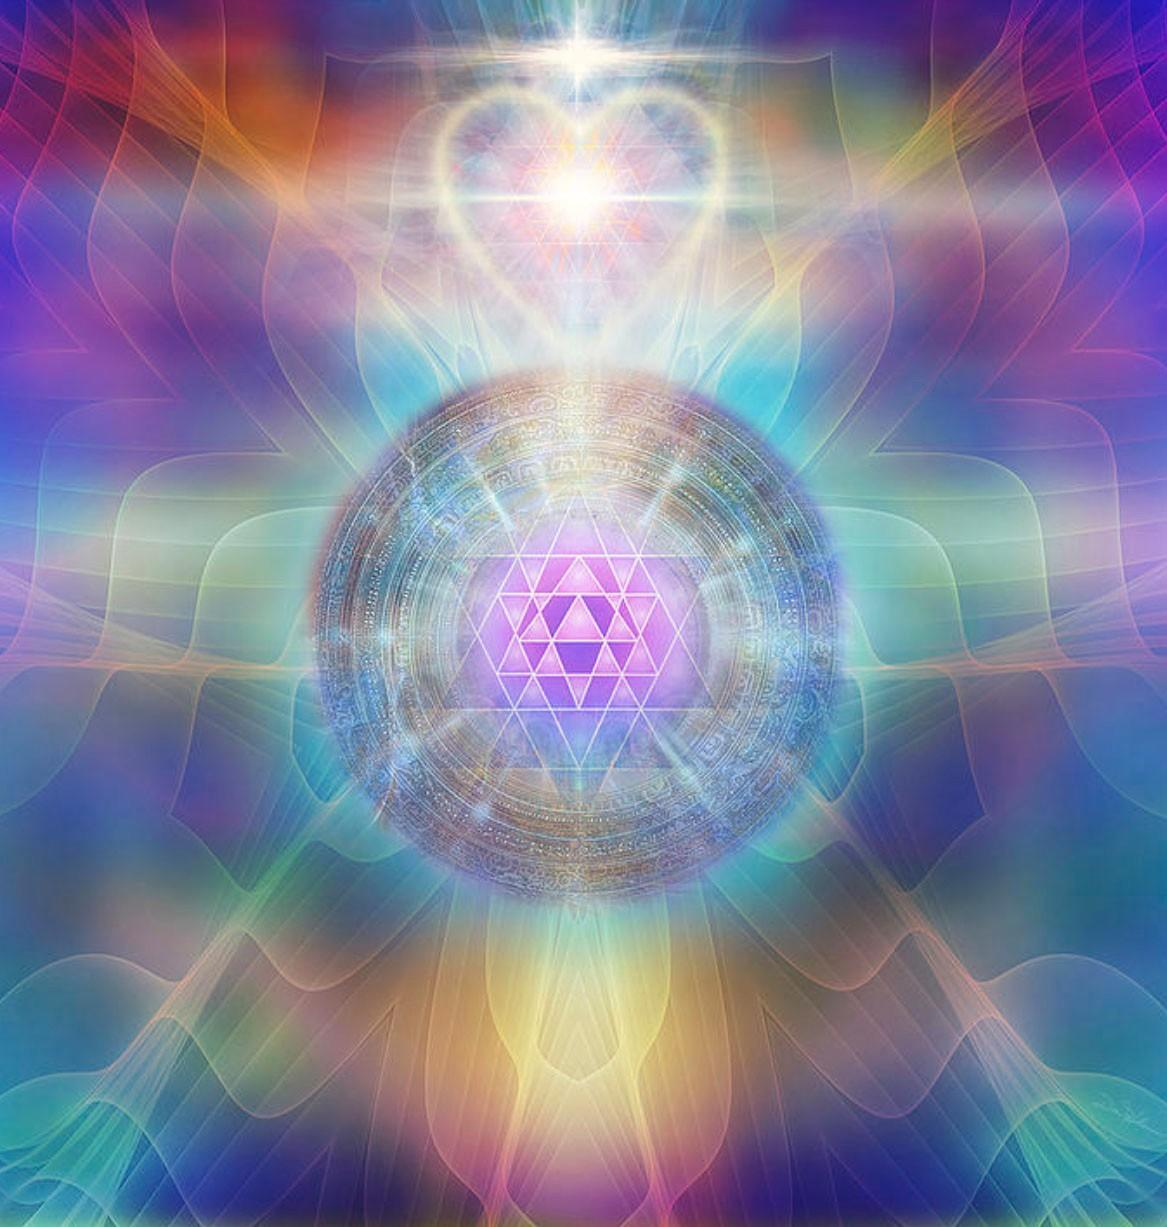 Complete healing in the quantum field to accelerate life success.